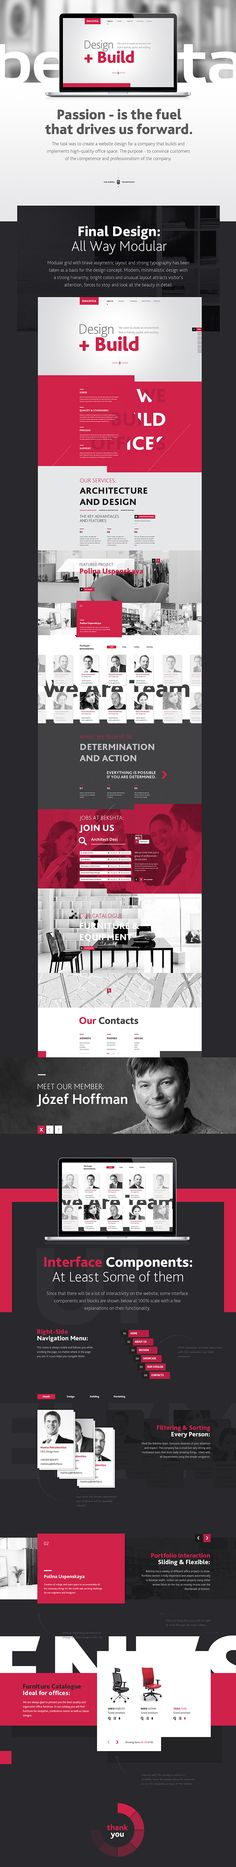 Bekshta Corporate Website / Alexey Masalov